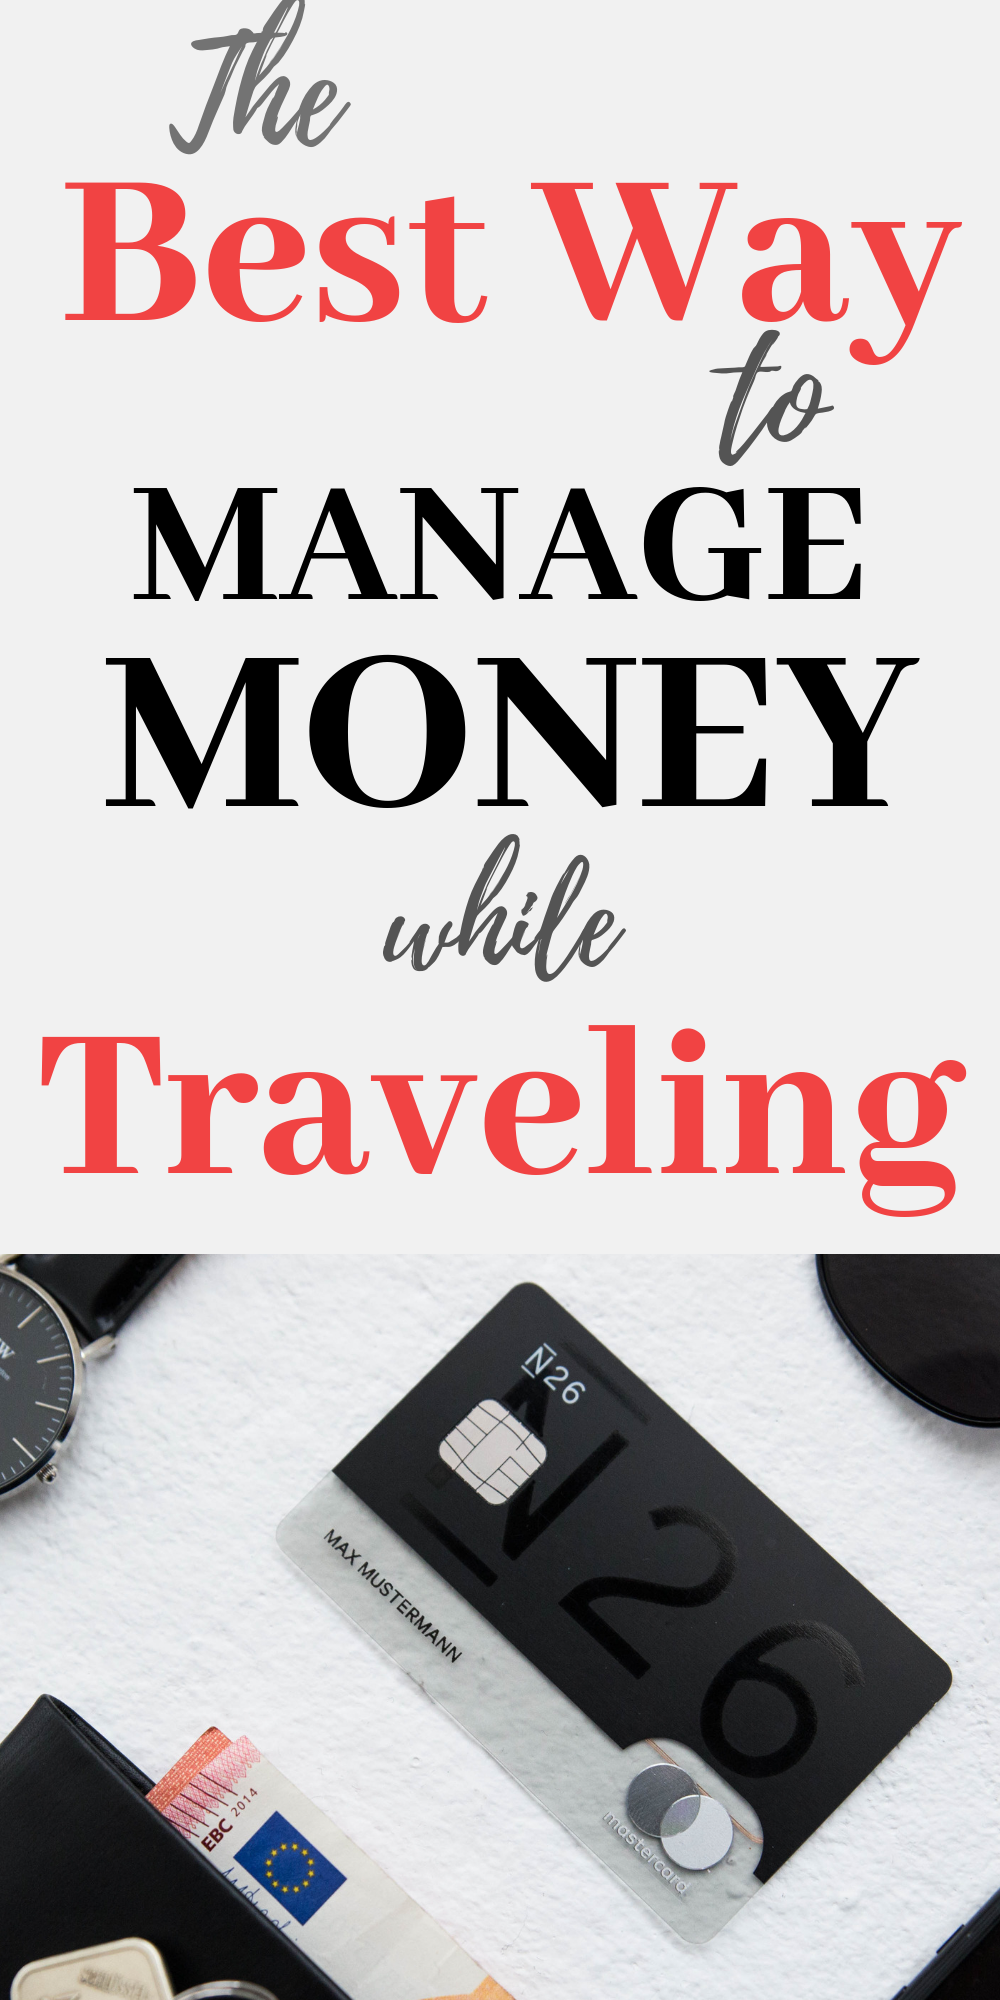 This Fintech Bank Makes It Super Easy To Manage Money While Traveling Money Management Finance Saving Business Bank Account